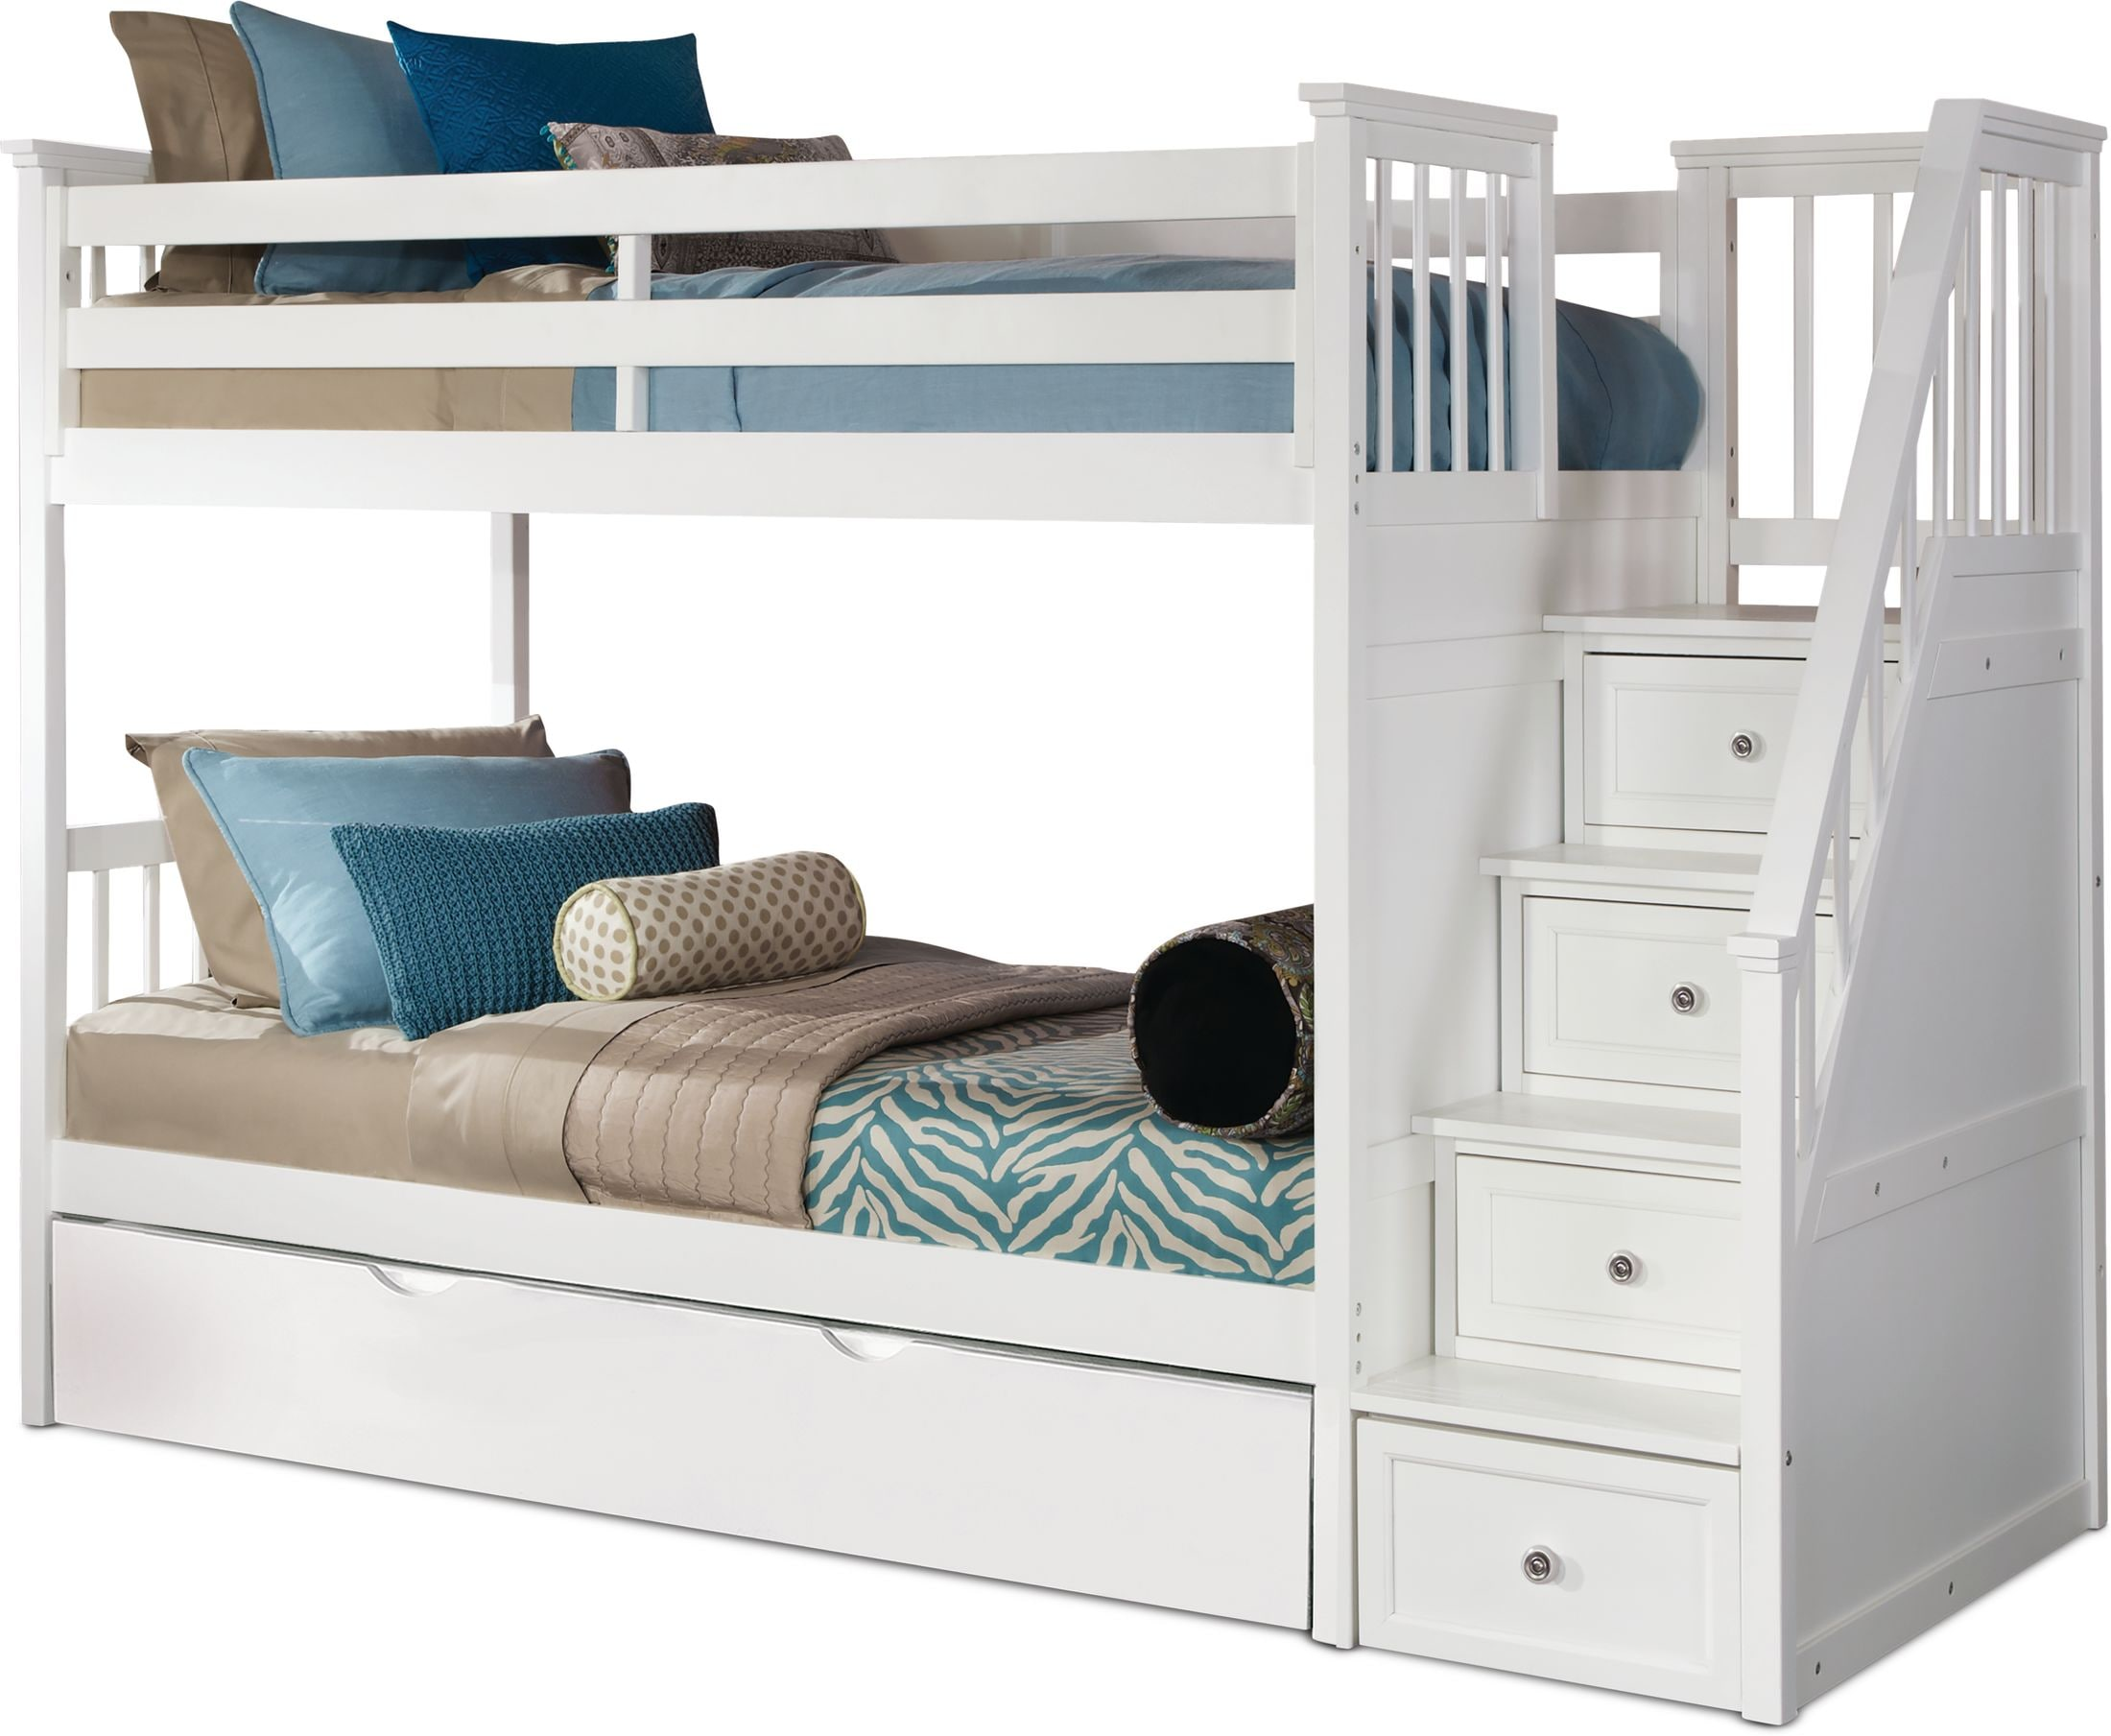 Flynn Trundle Bunk Bed With Storage Stairs Value City Furniture